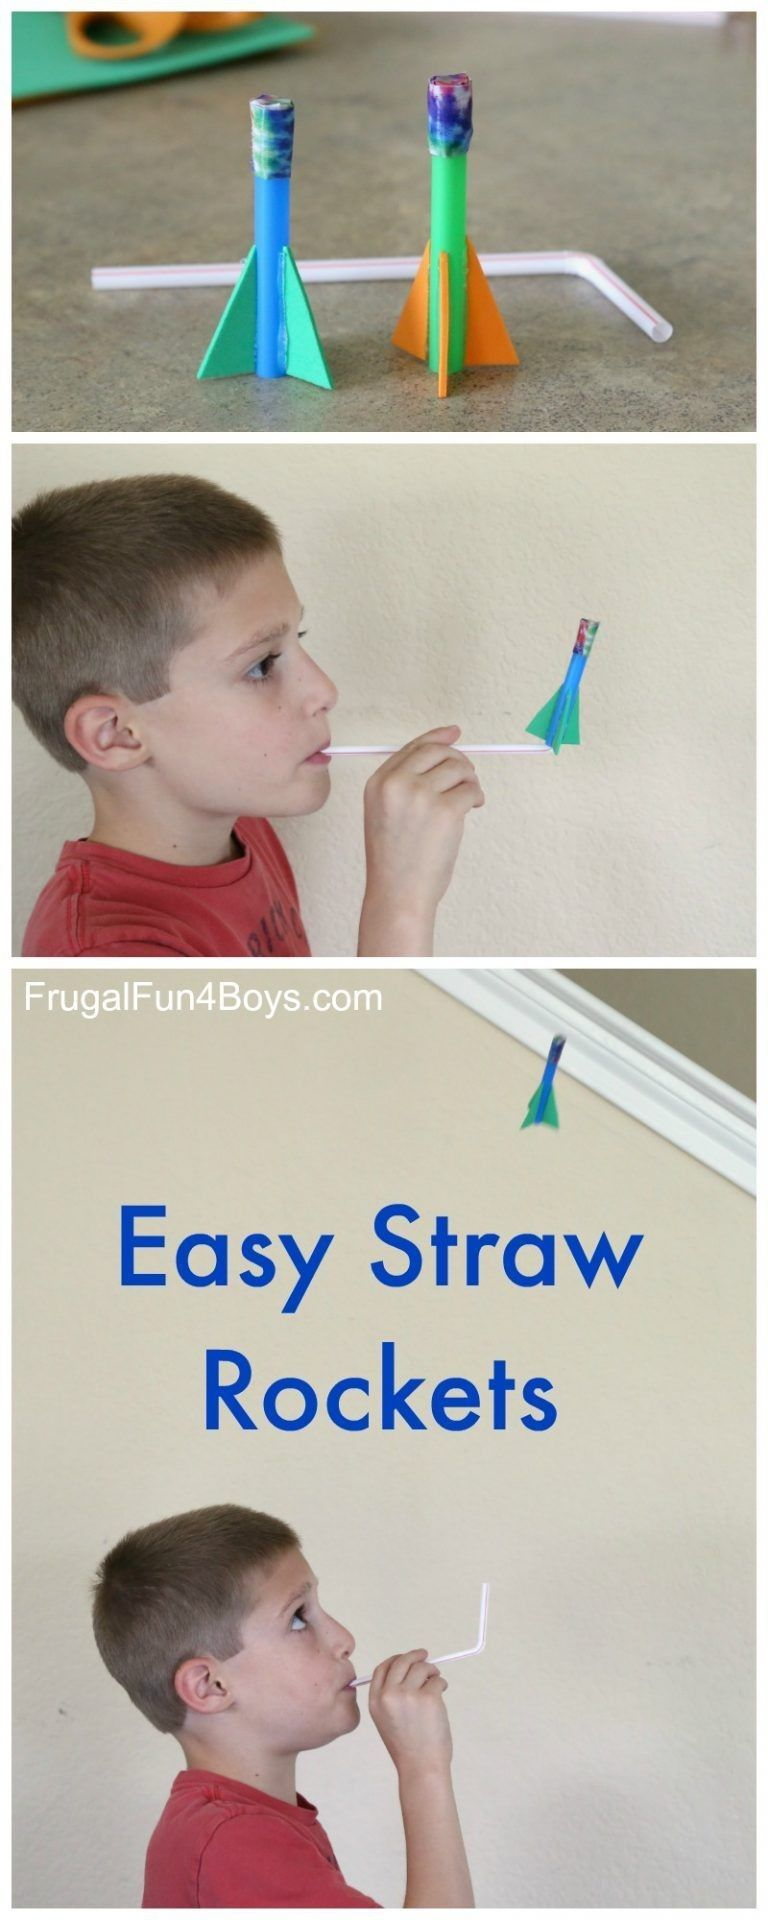 Photo of How to make simple straw rockets